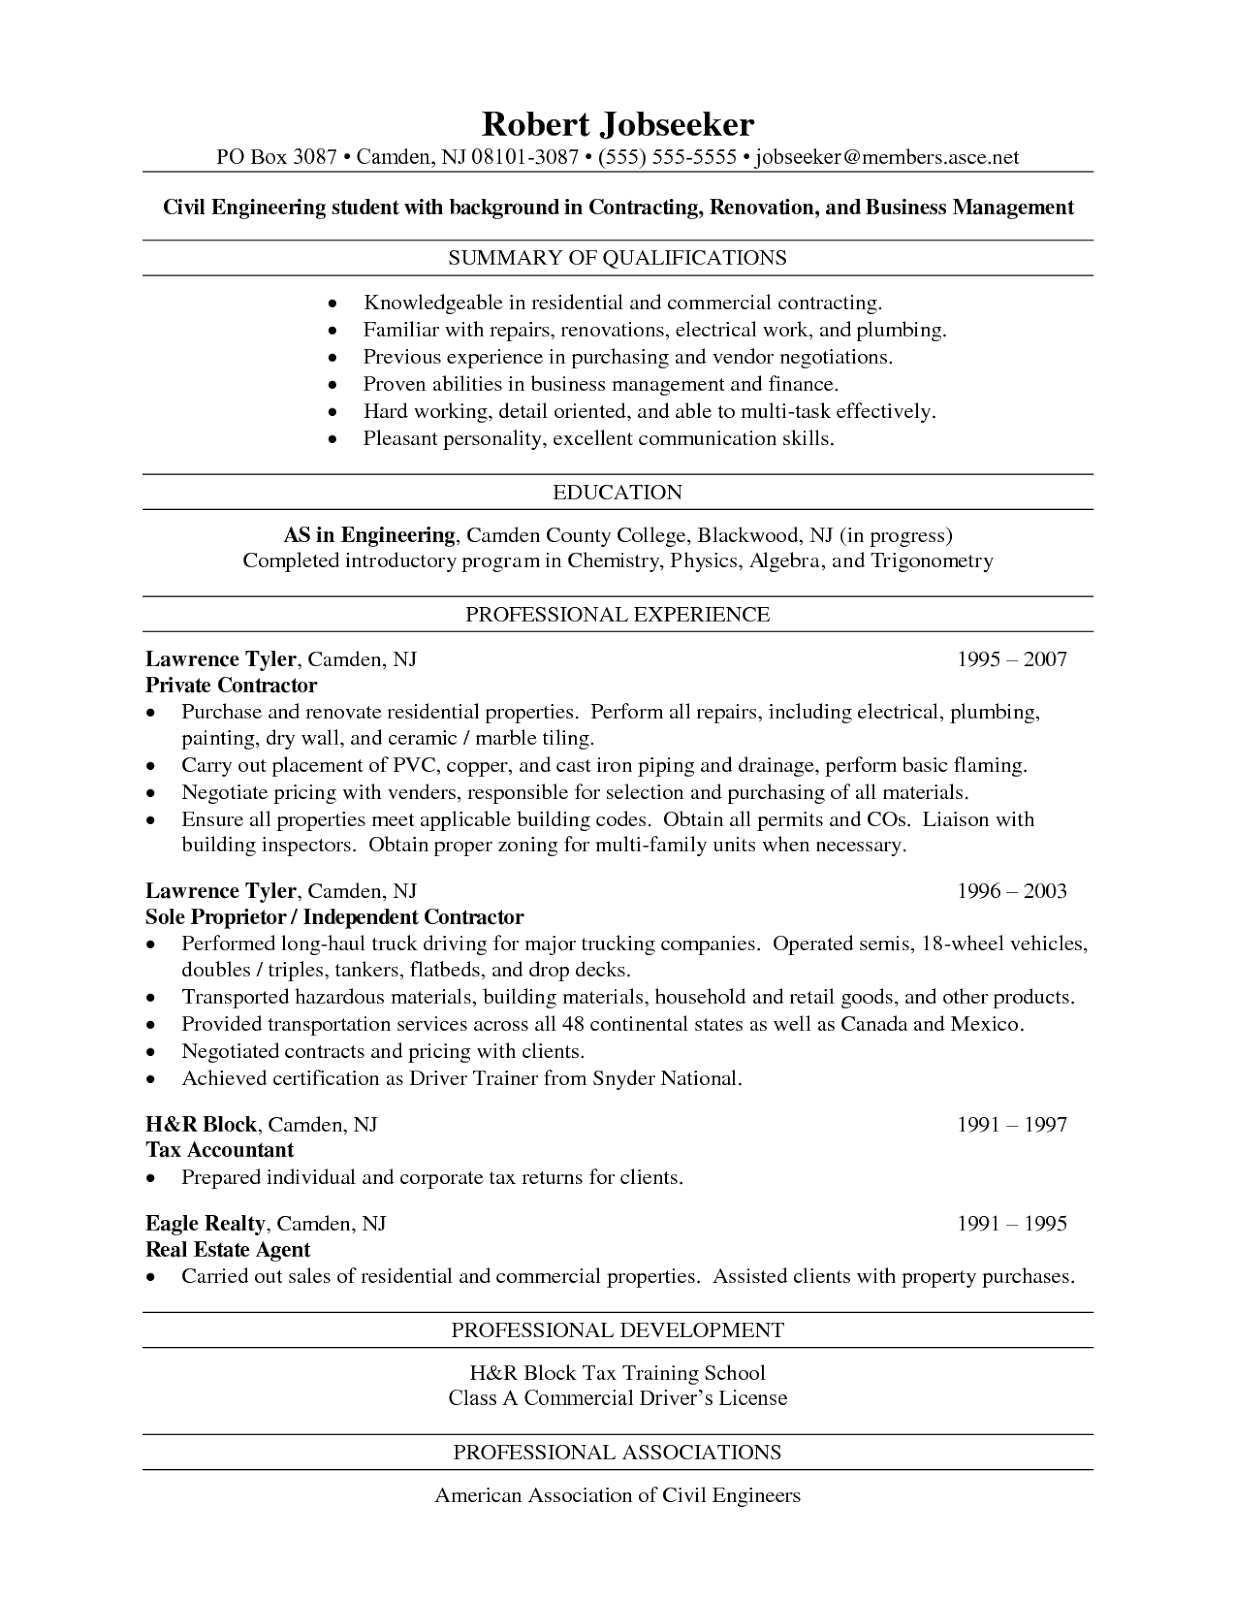 resume format for freshers engineers ece